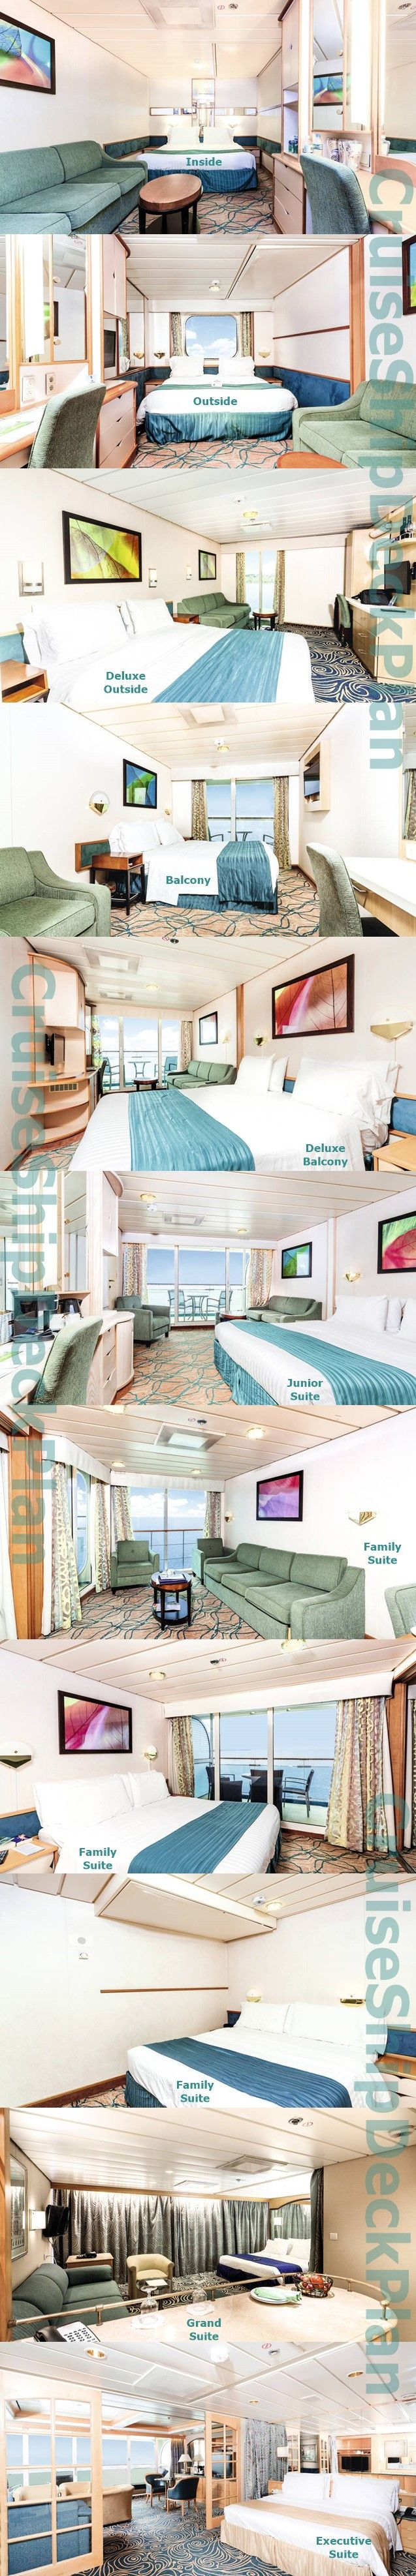 Thomson TUI Discovery cabins and suites photos (combo)